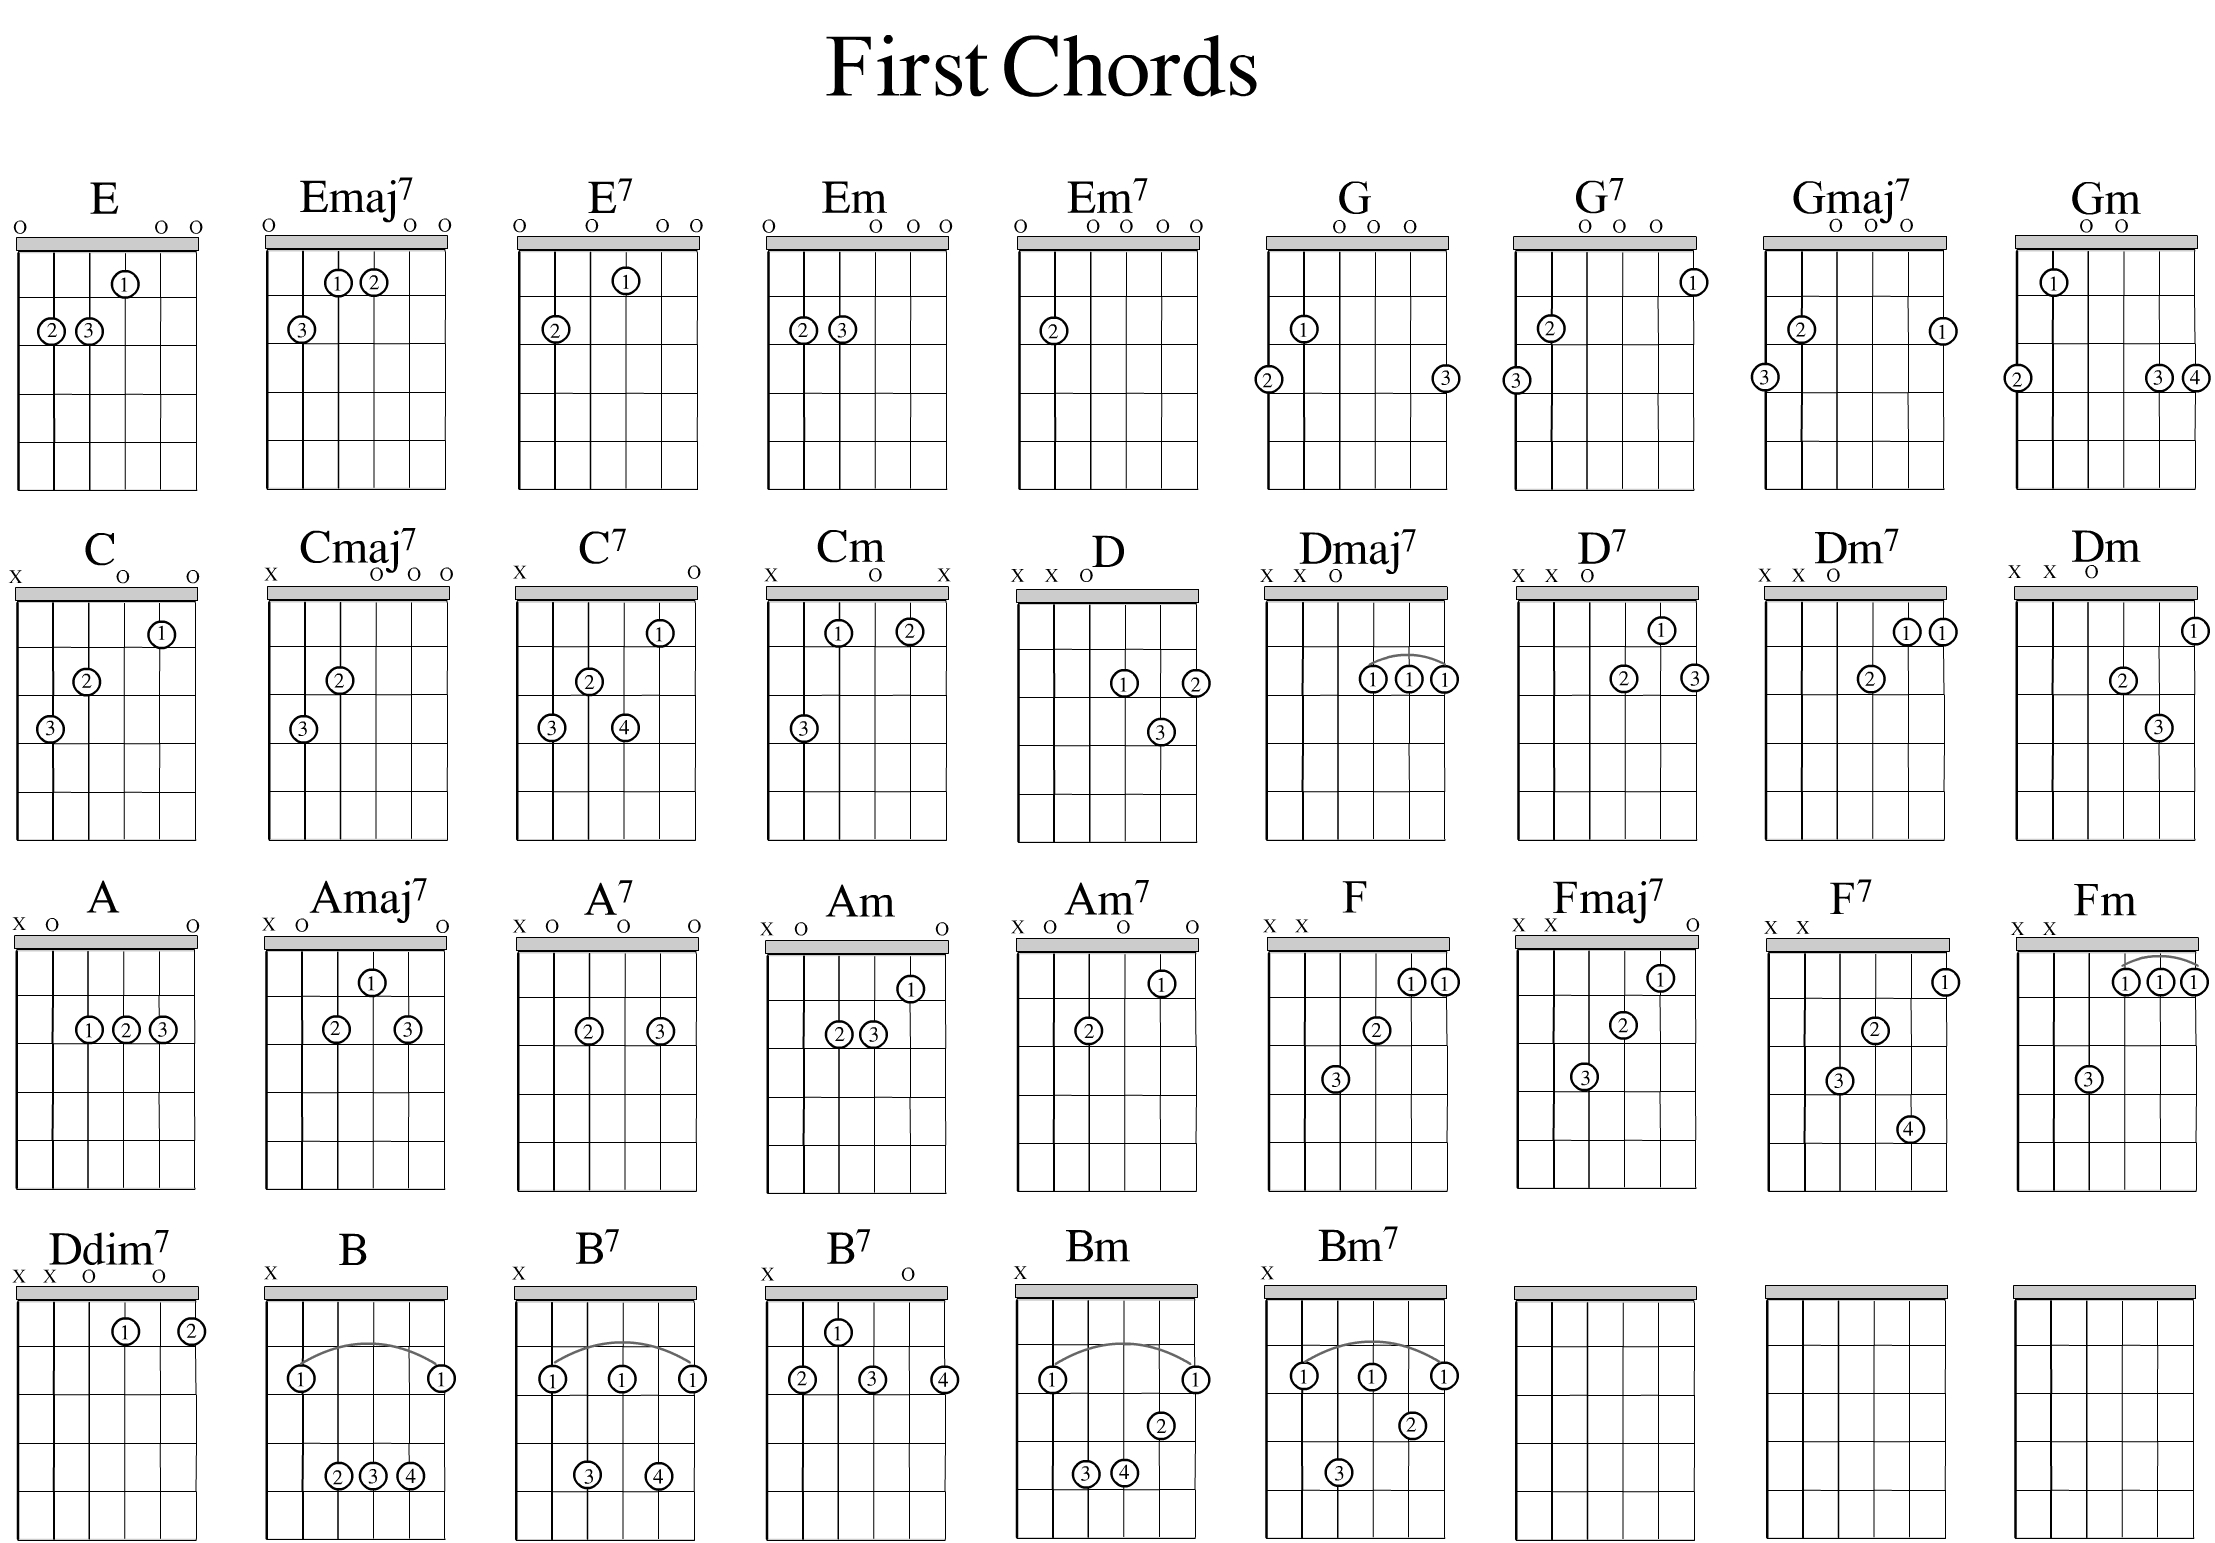 Guitar bar chords chart printable image collections guitar capo chord conversion chart image collections chart example ideas bar chords chart guitar gallery guitar chords hexwebz Images